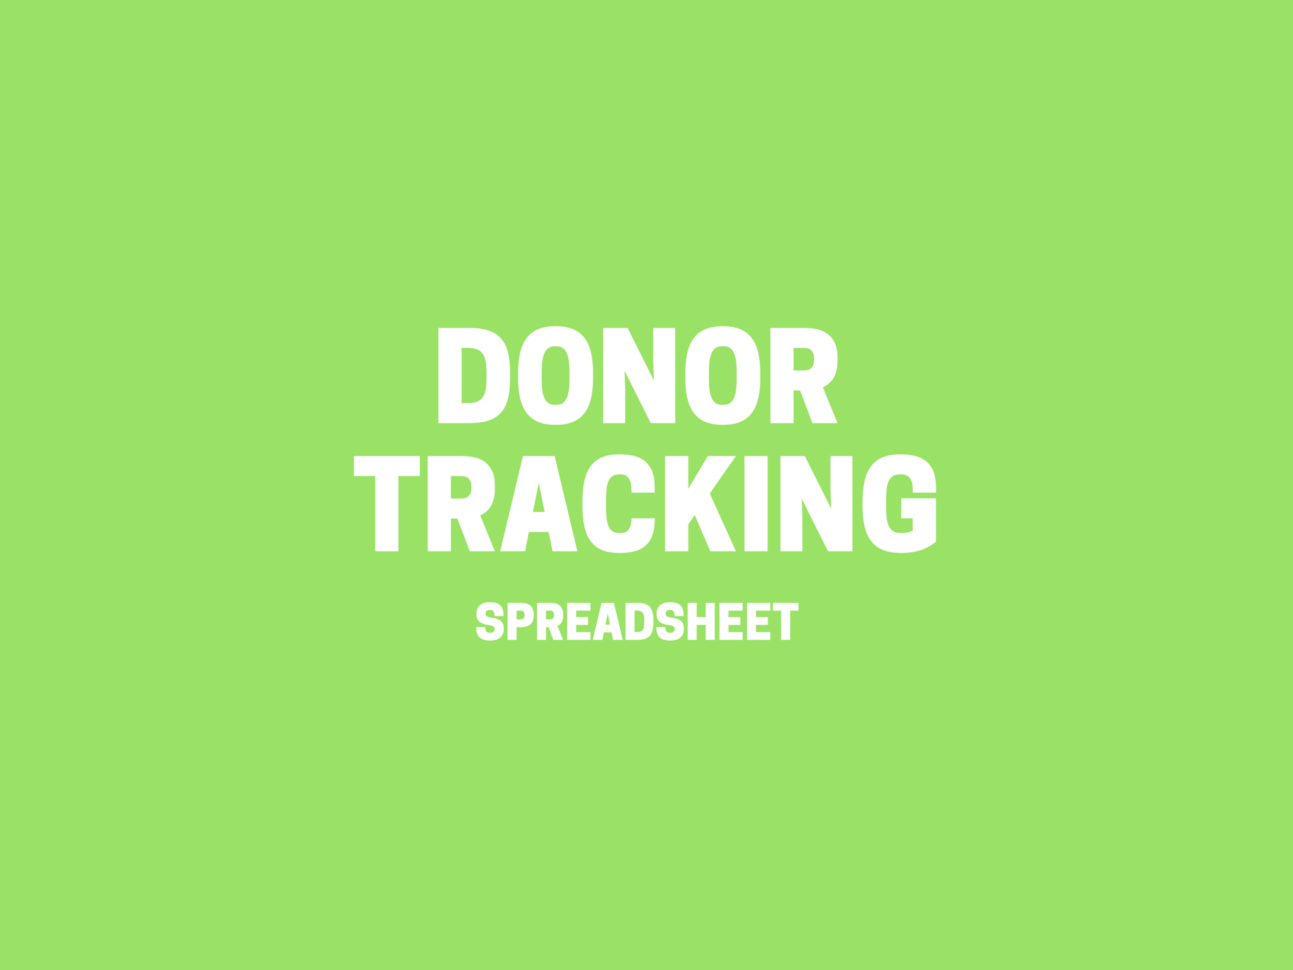 Donor Management Spreadsheet Pertaining To Donor Tracking Spreadsheet > Donor Management Excel